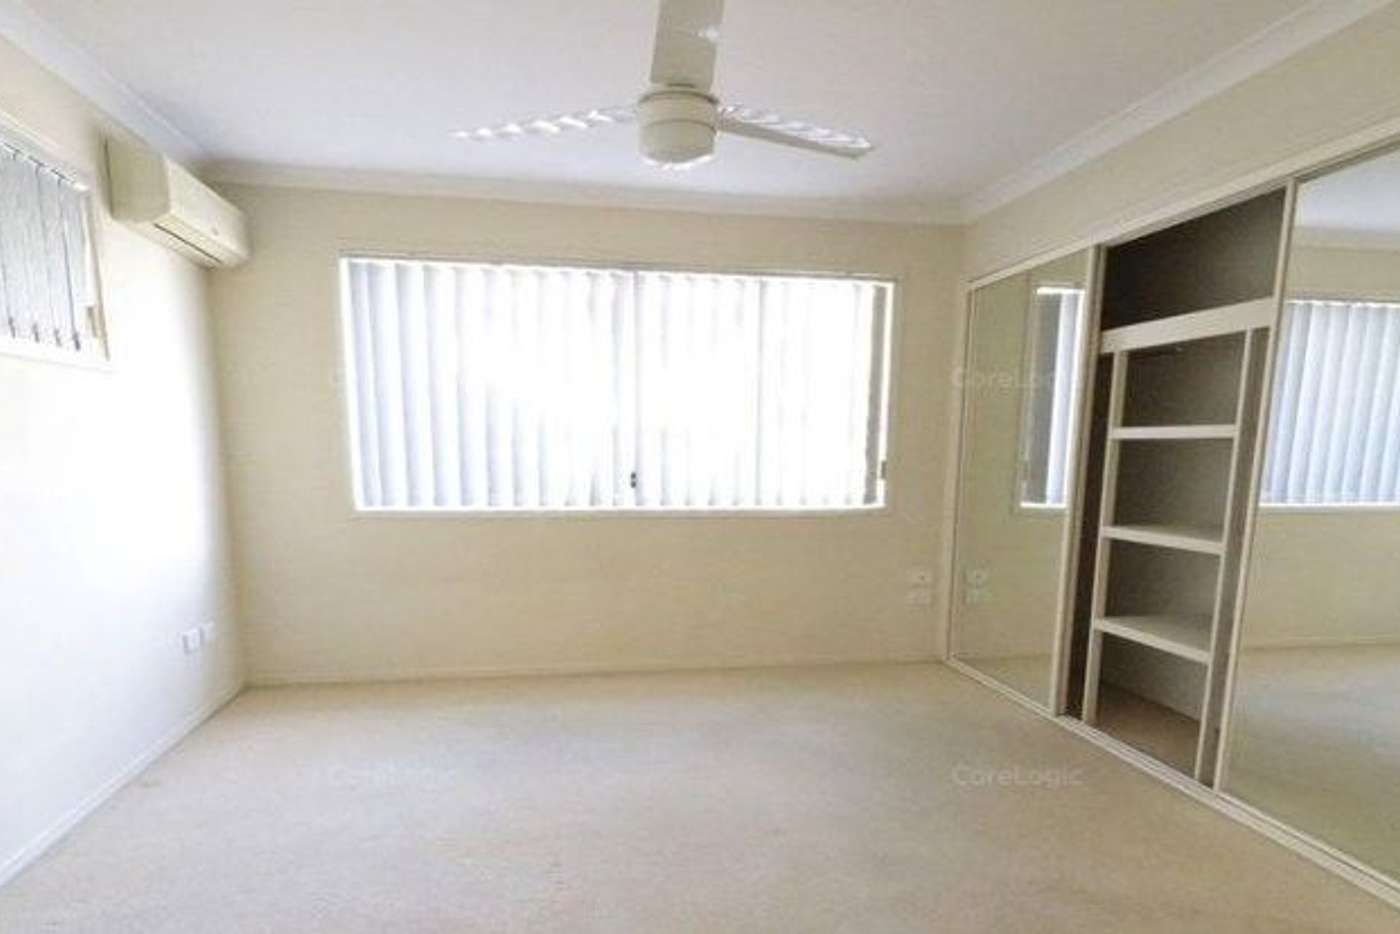 Seventh view of Homely townhouse listing, 65/25 Buckingham Place, Eight Mile Plains QLD 4113